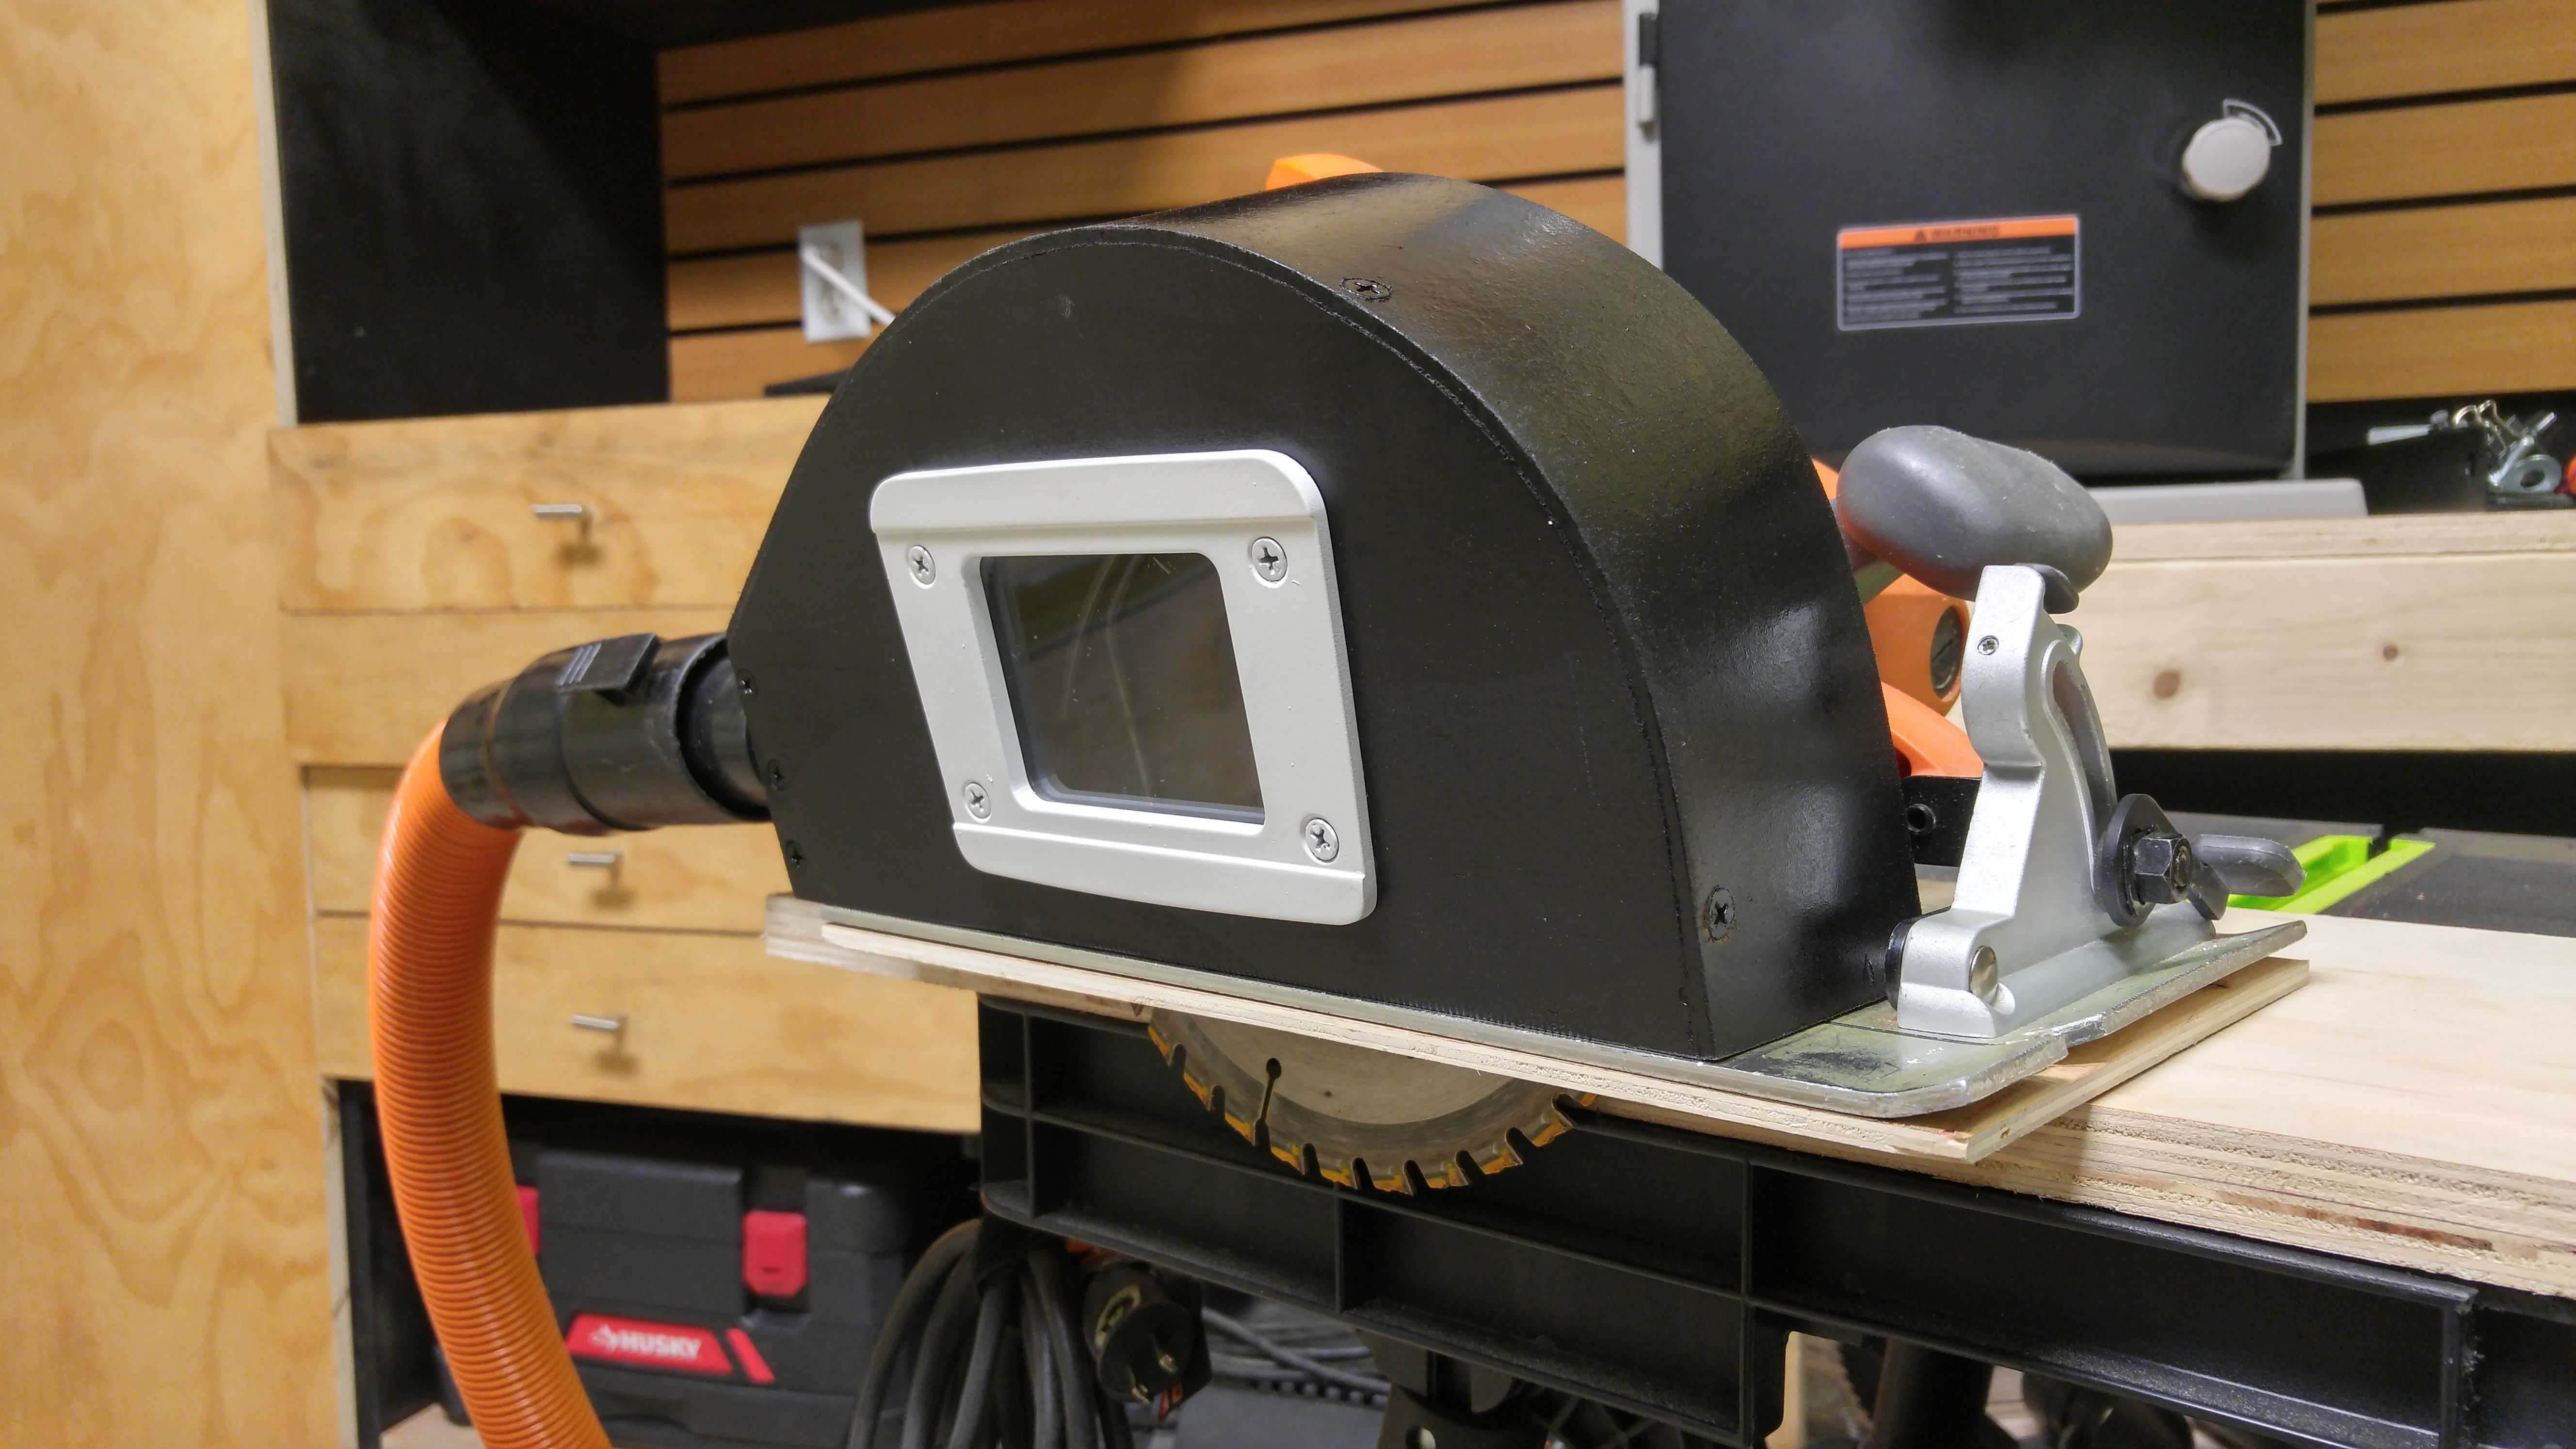 How To Make A Circular Saw Dust Collecting Attachment Circular Saw Dust Collection Best Circular Saw